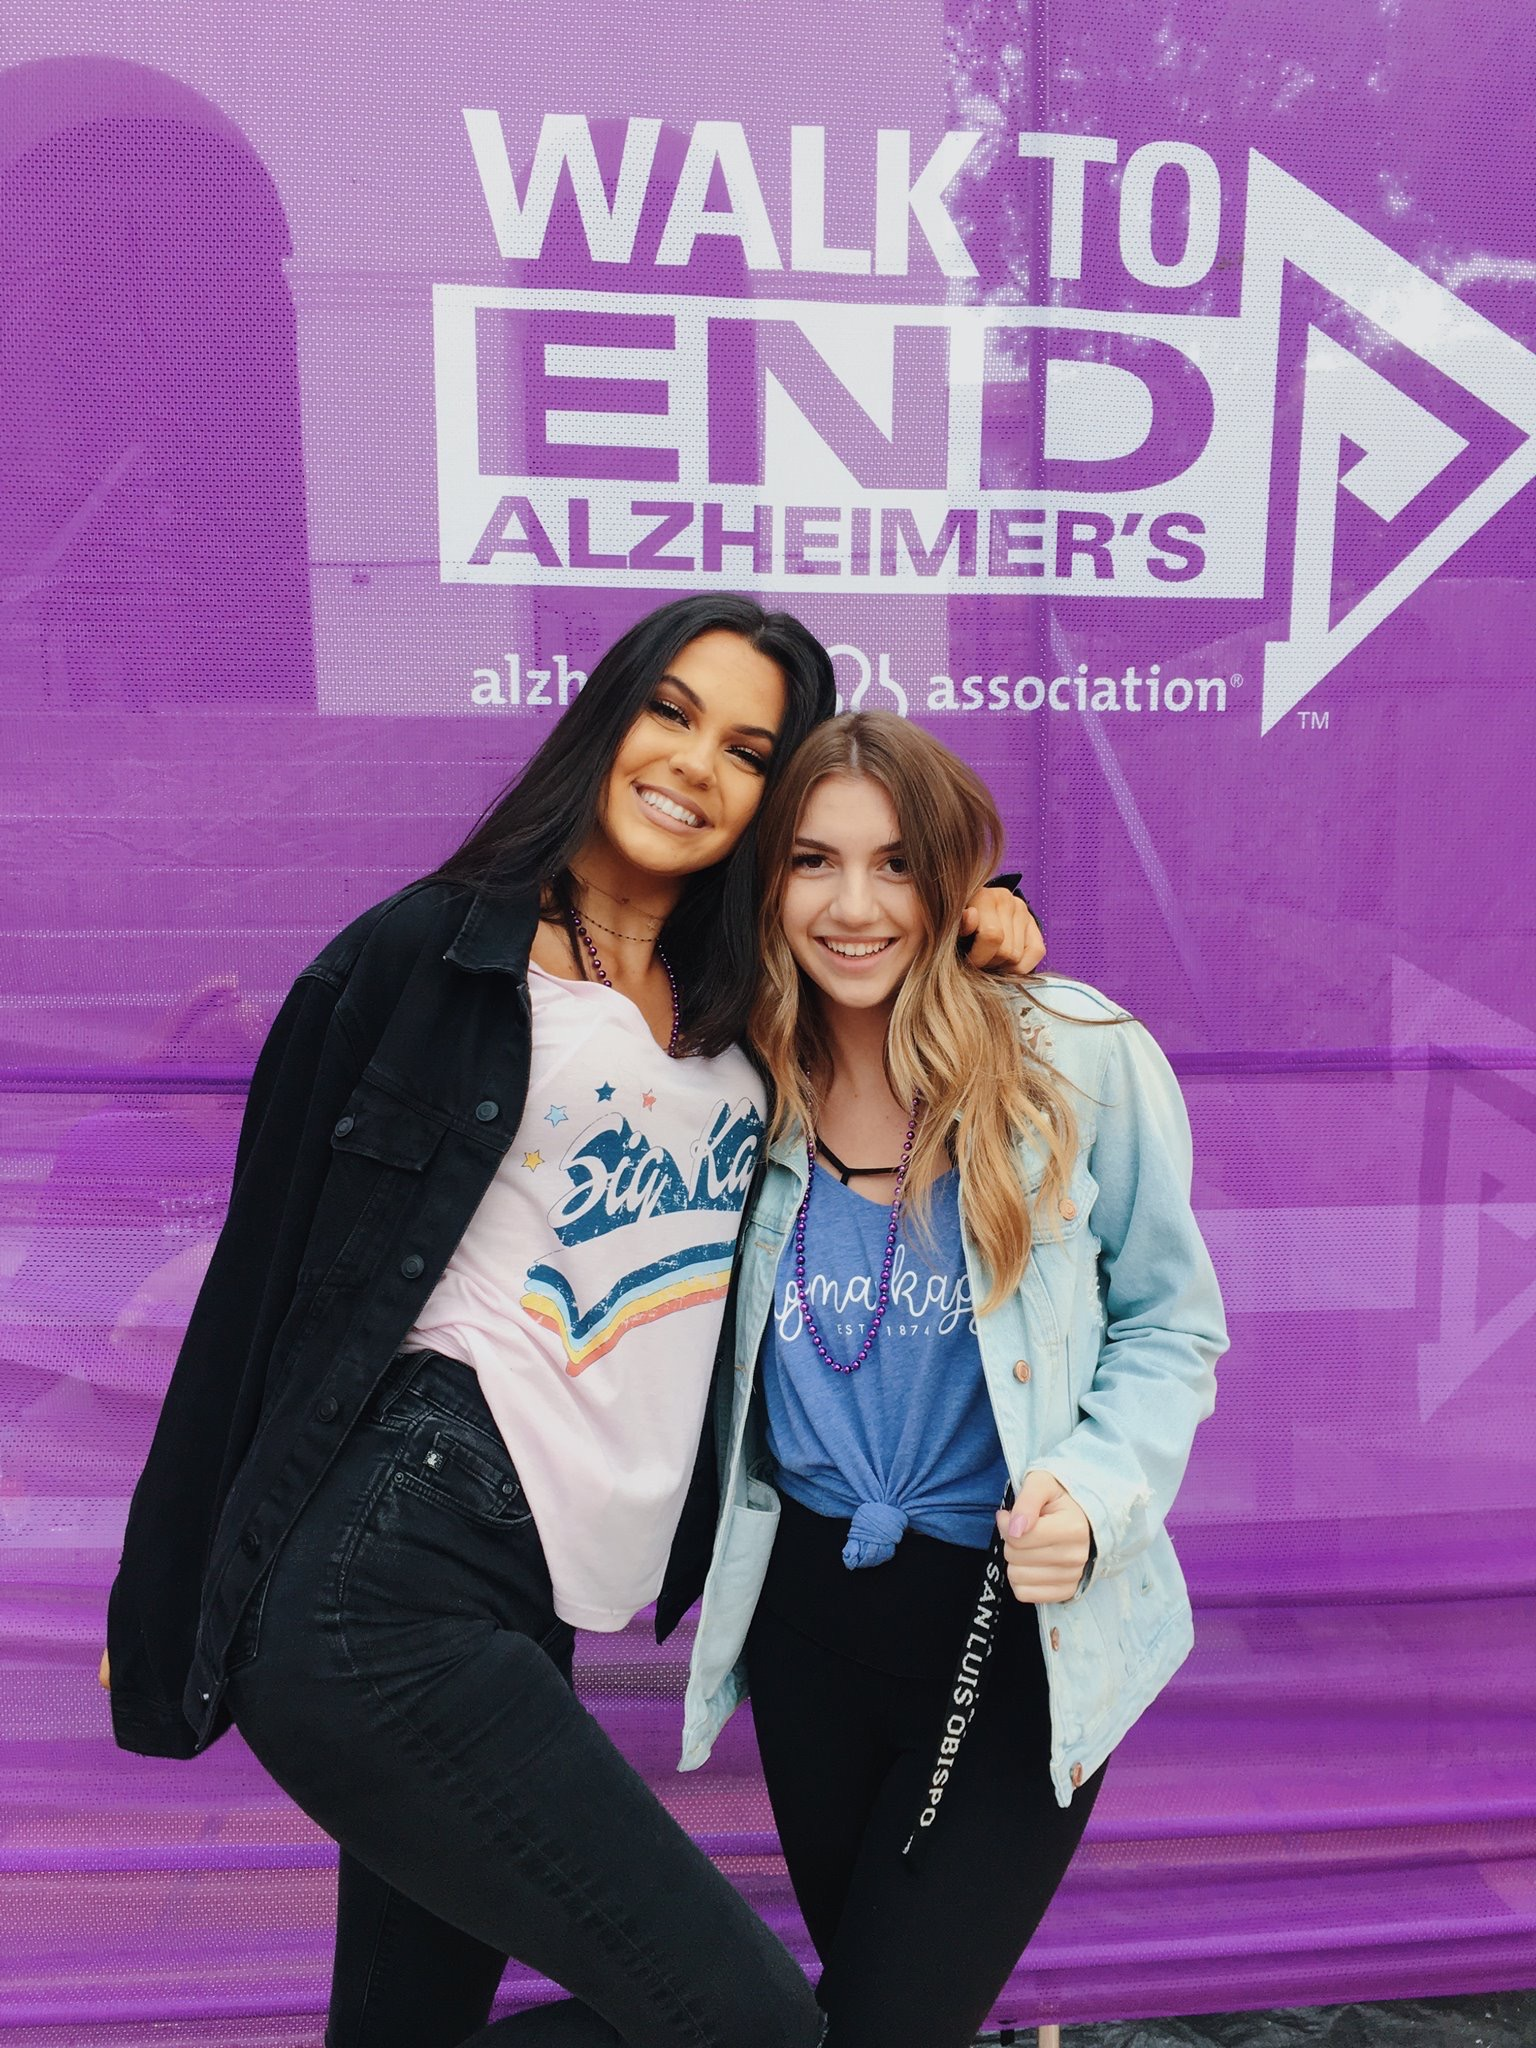 Walk to End Alzheimer's 2017